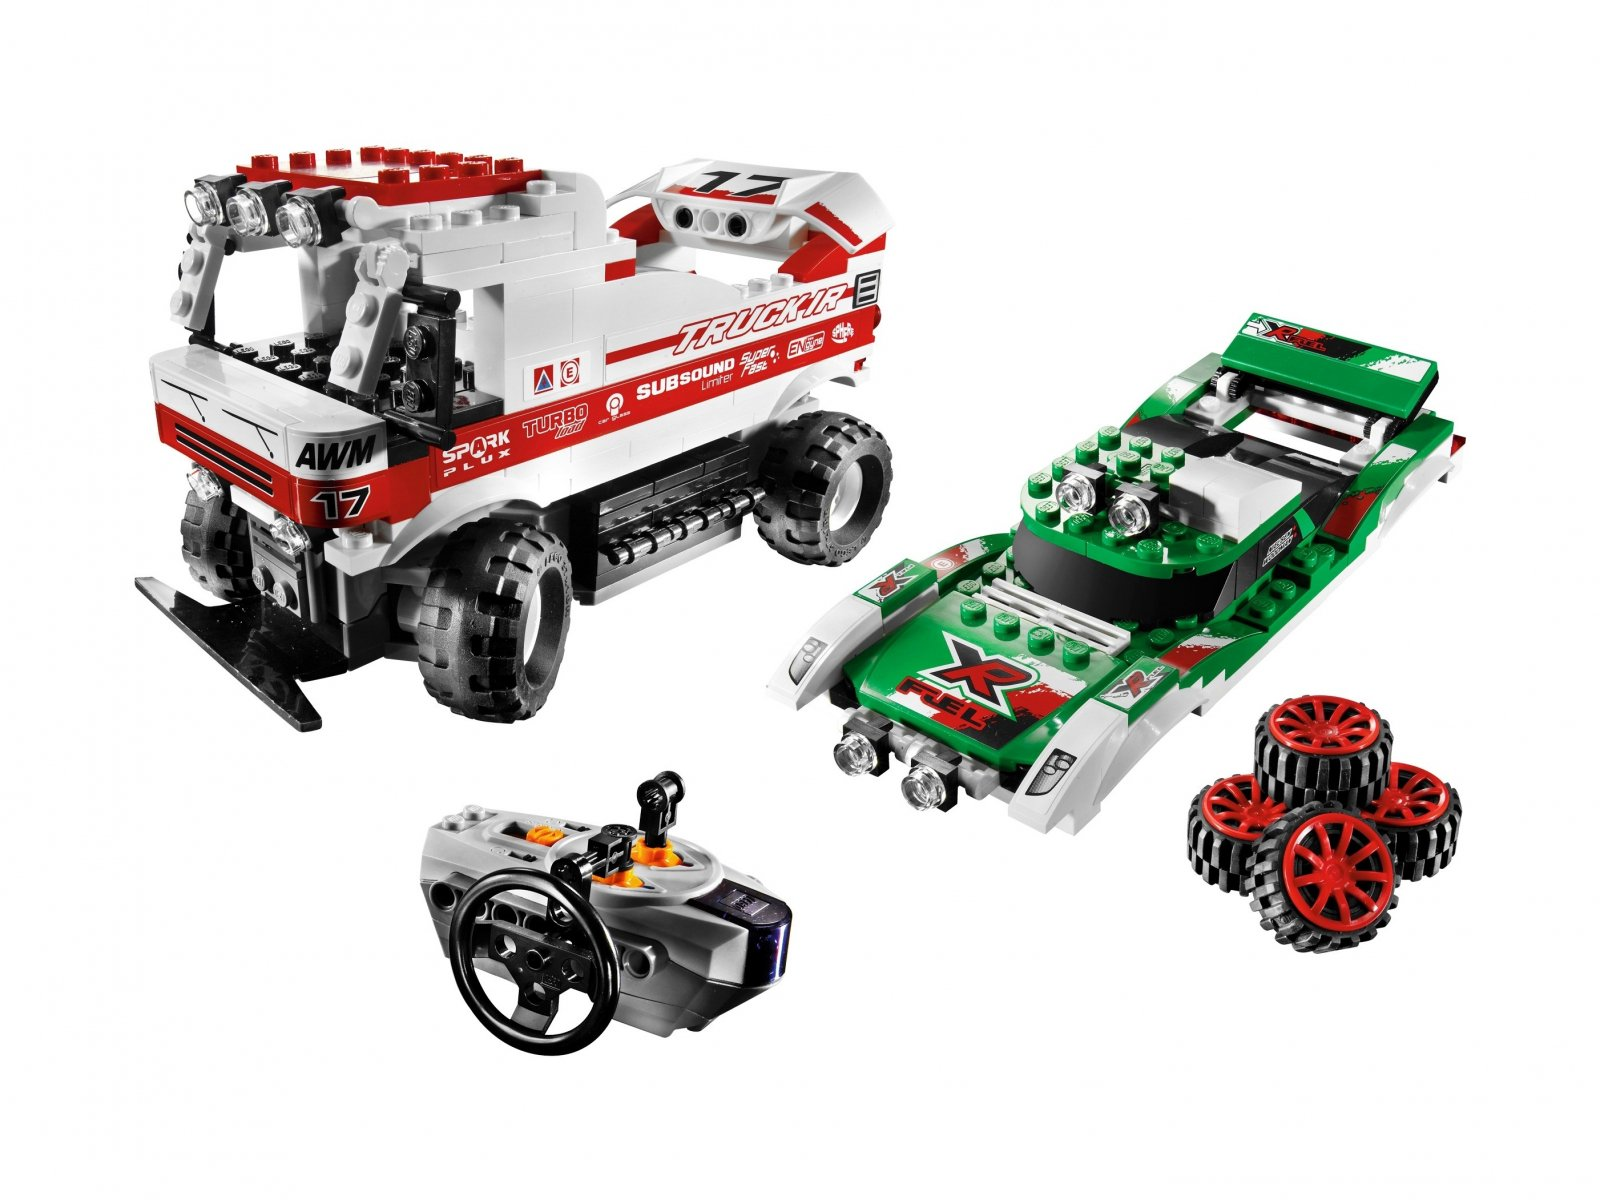 LEGO Racers Twin X-treme RC 8184